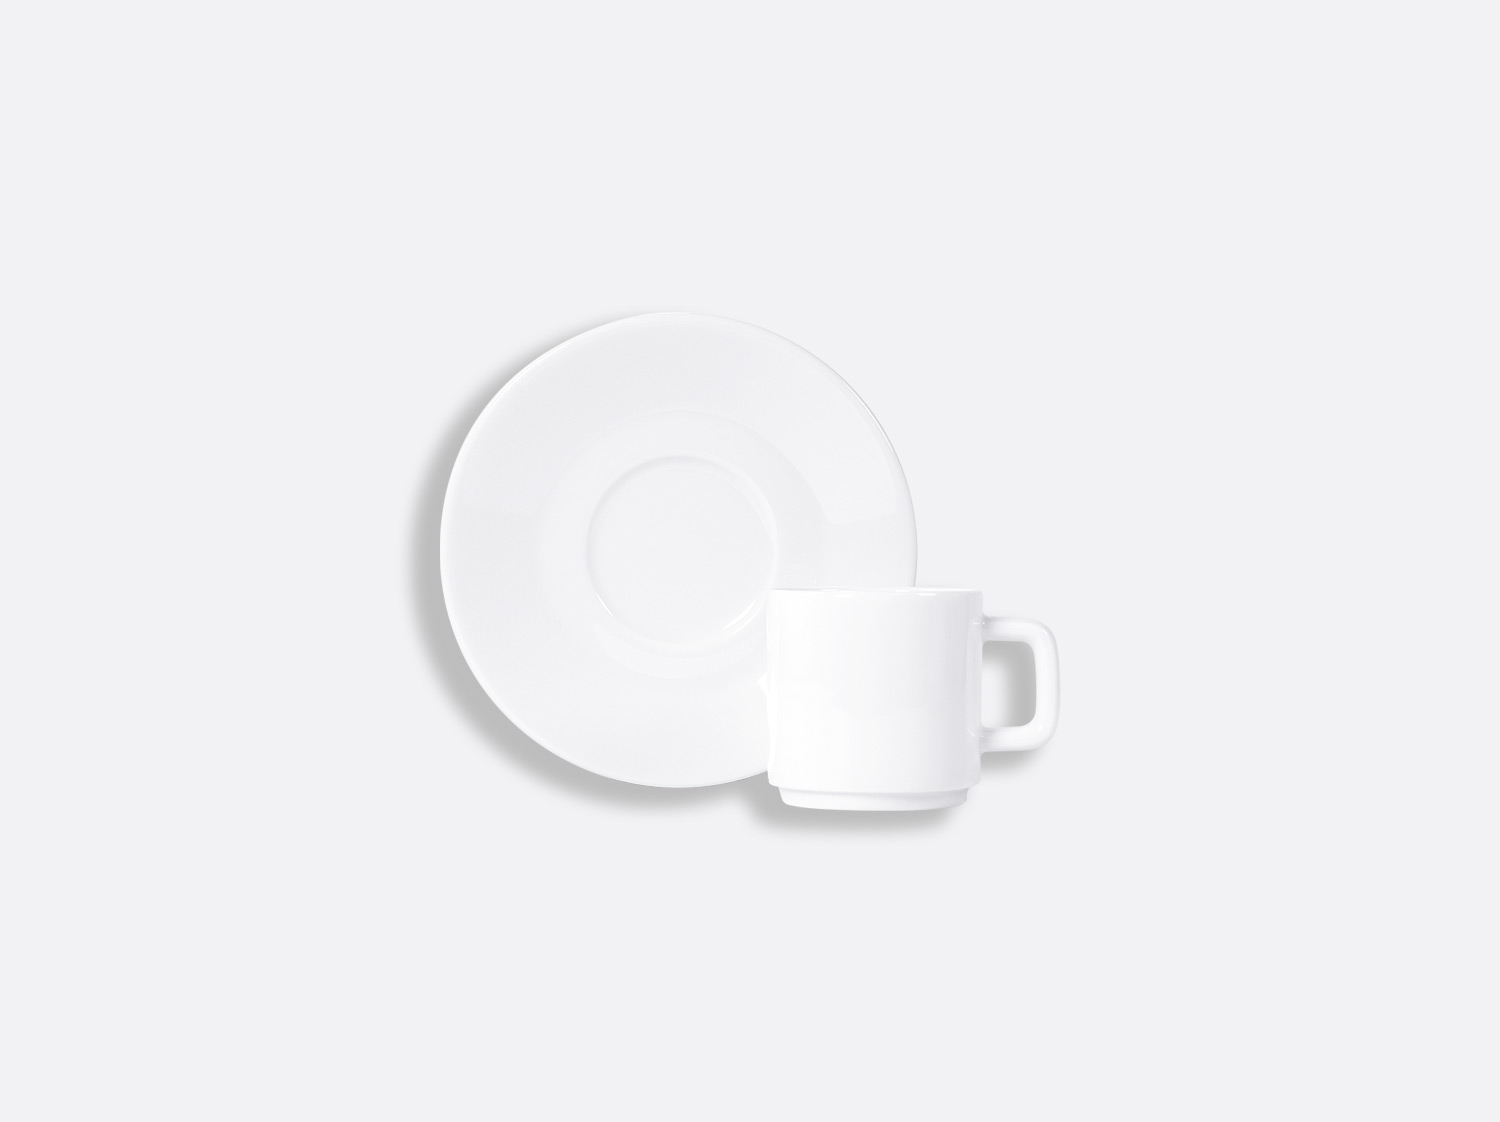 China Stackable espresso cup and saucer 3.5 oz of the collection BIARRITZ | Bernardaud